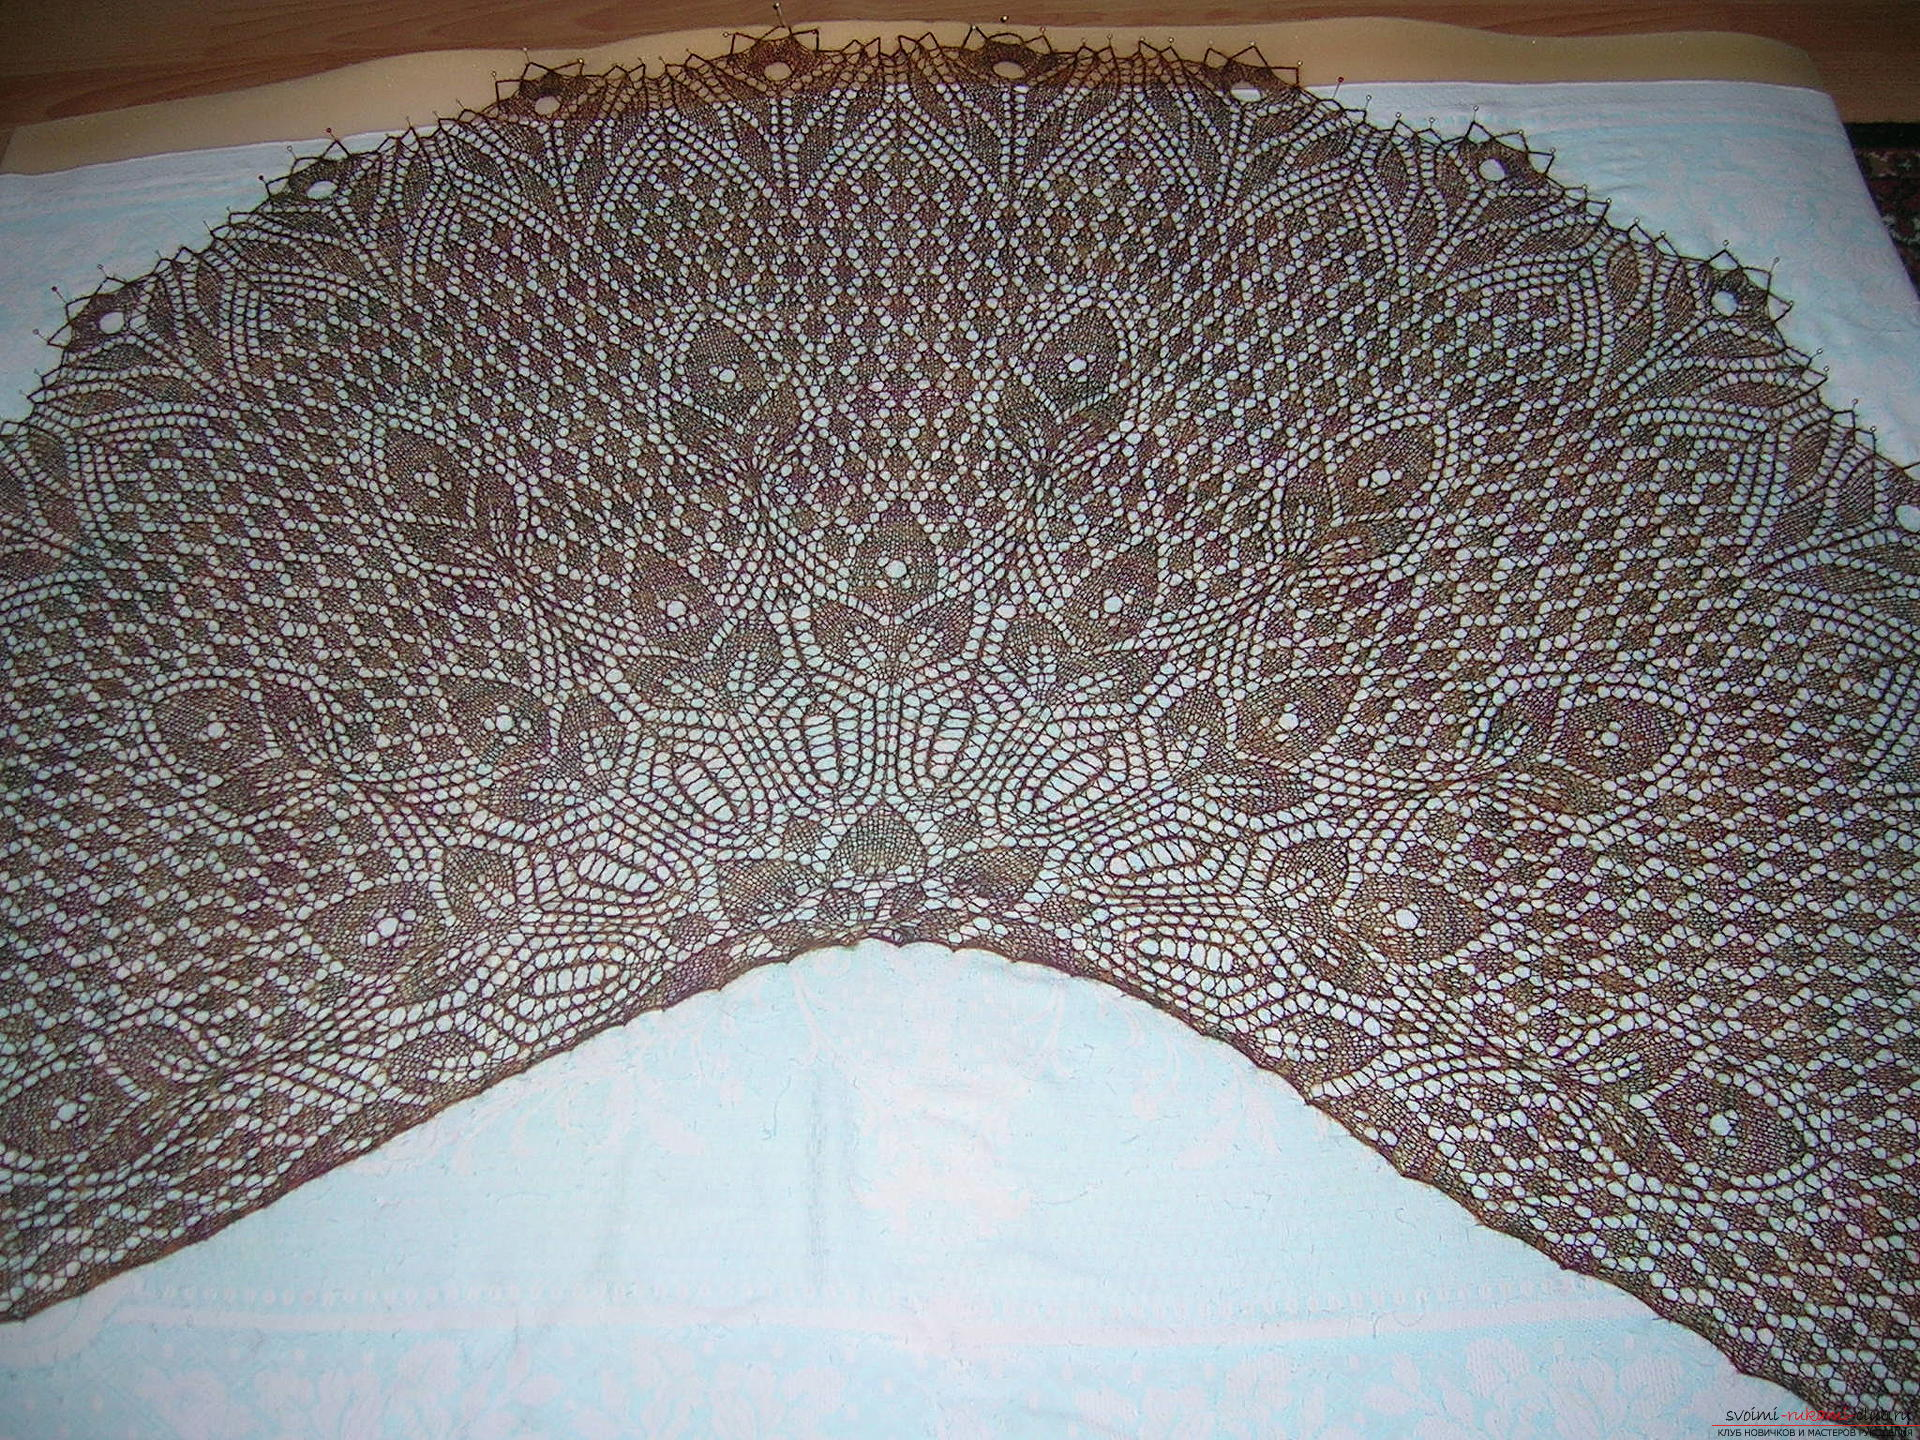 Weightless shawl of Italian wool of large size, knitted. Photo №1